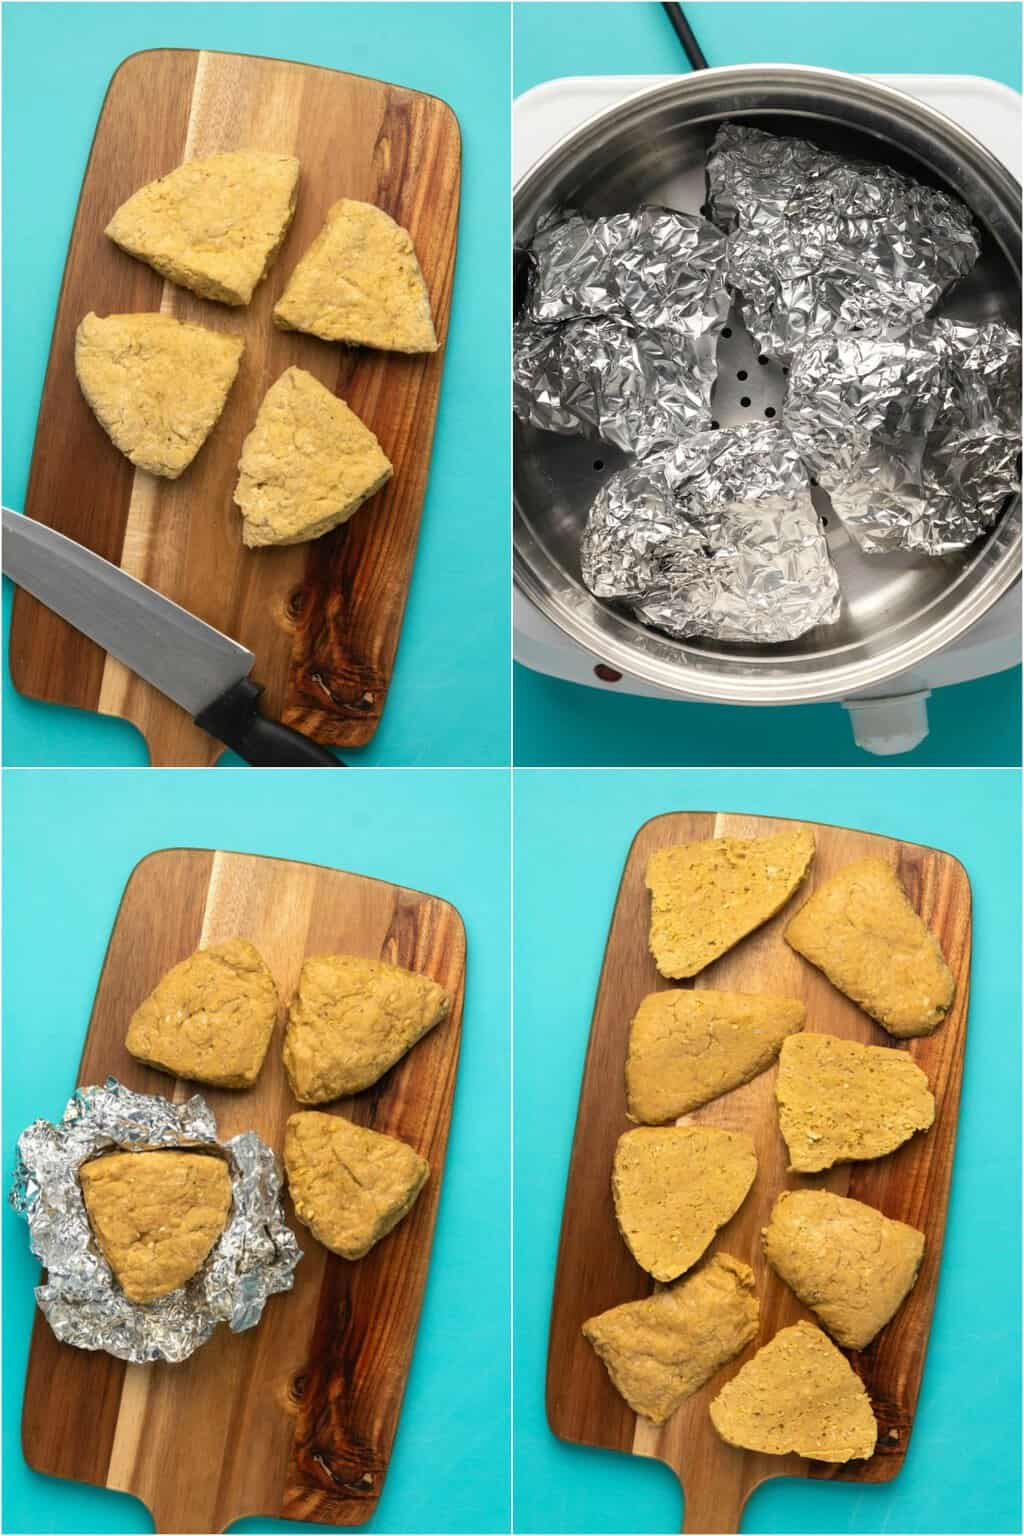 Step by step process photo collage of how to make vegan chicken fillets.